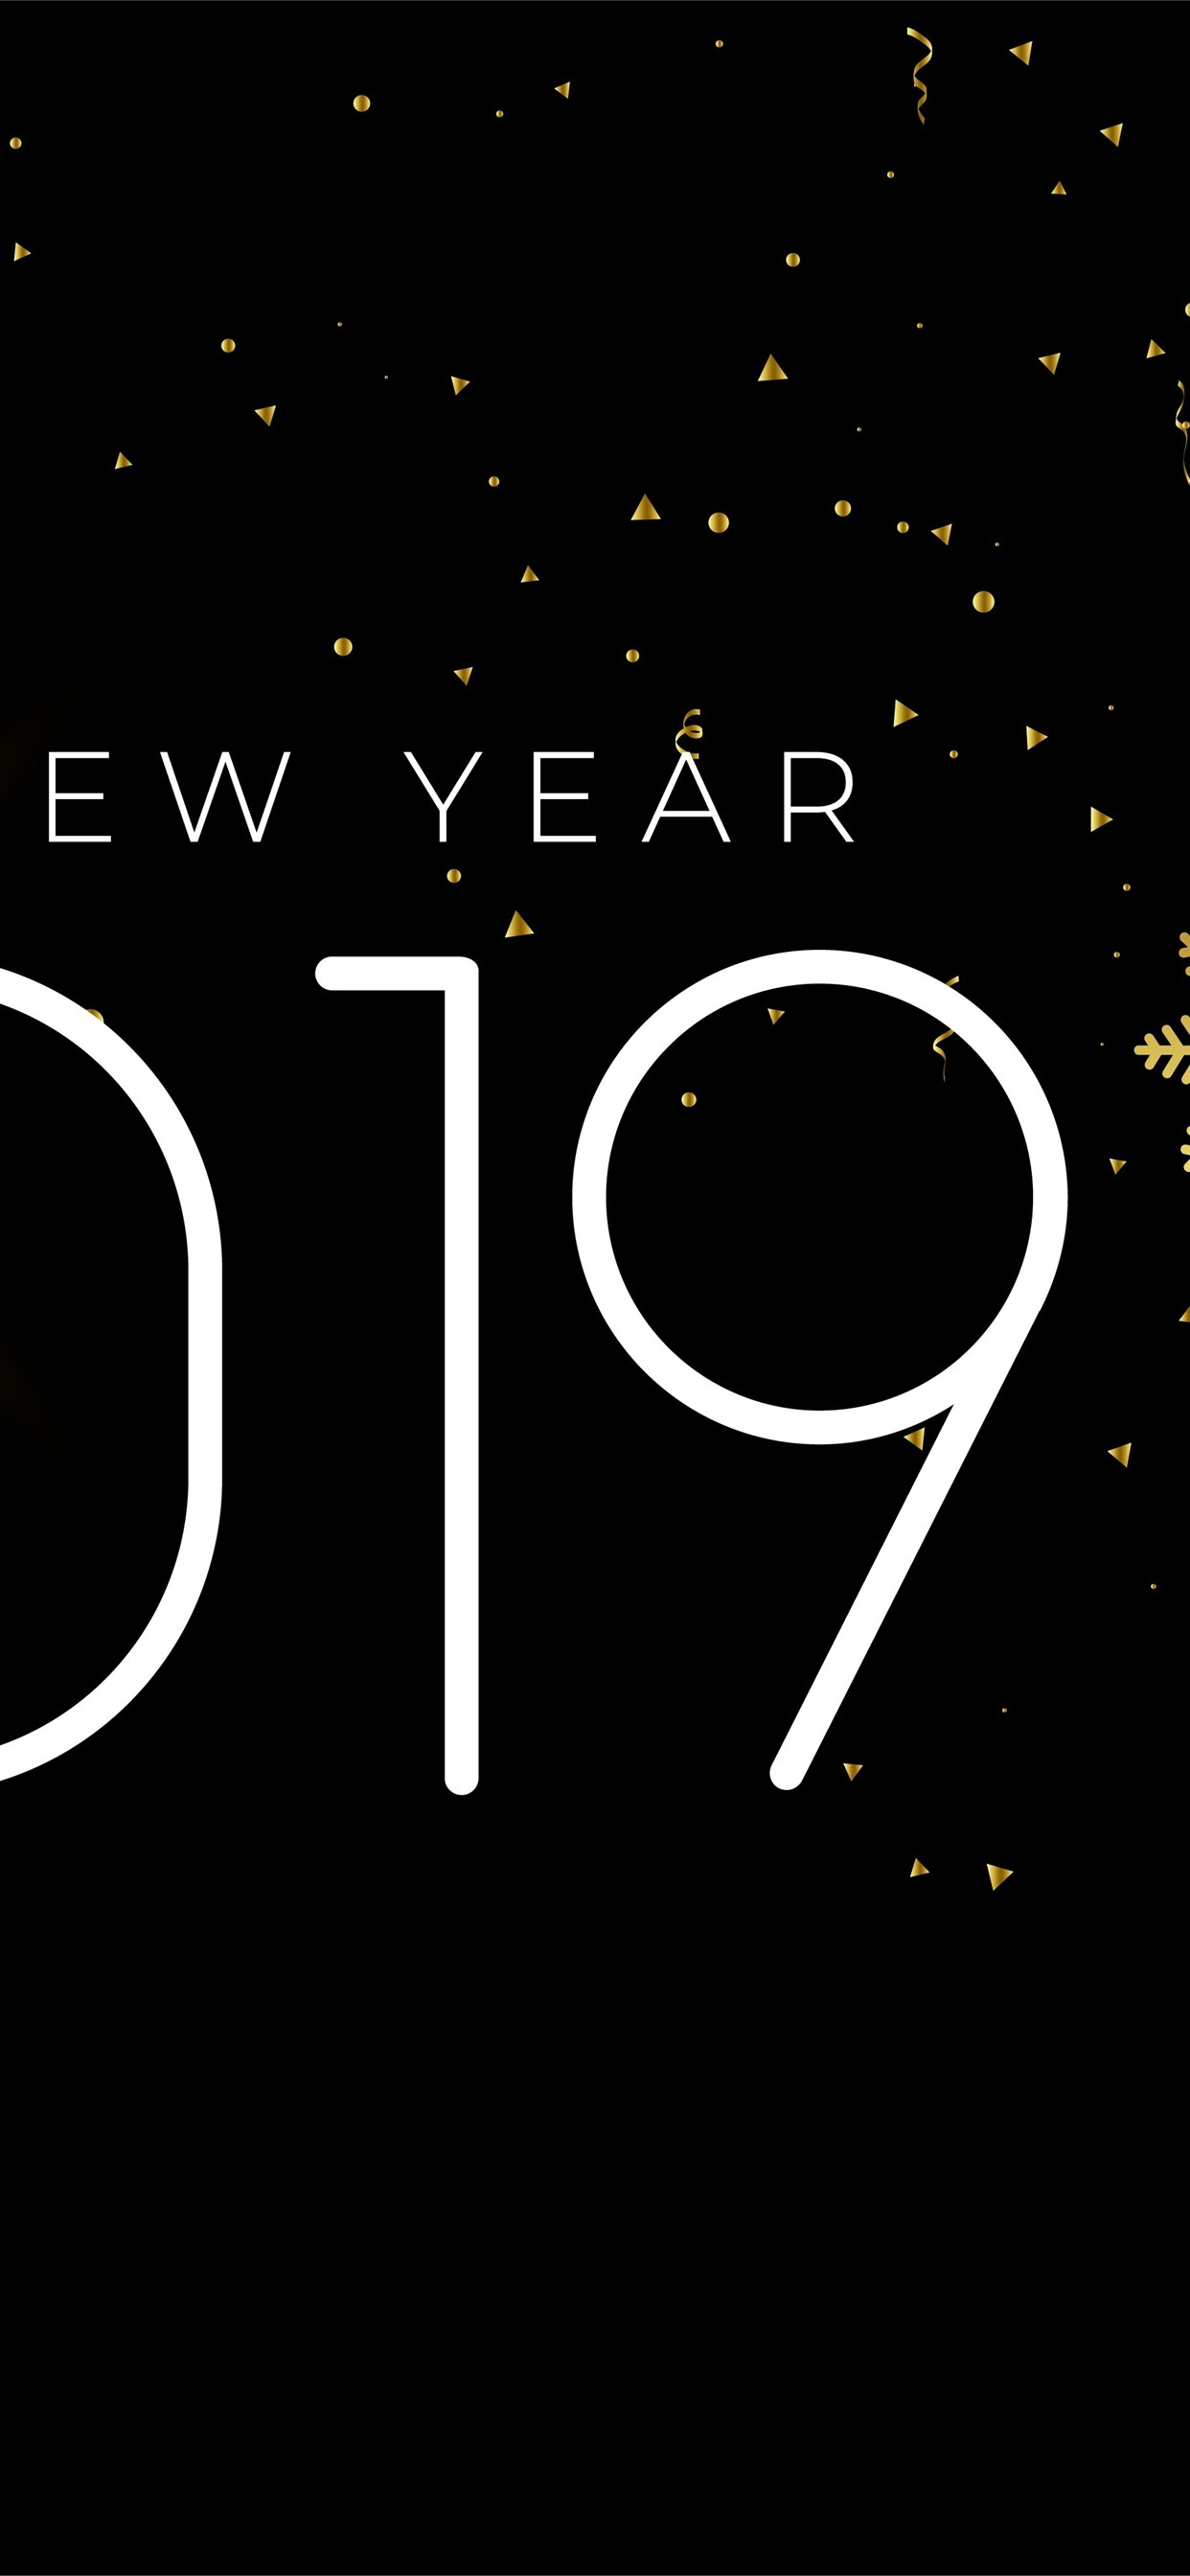 Happy New Year 2019 Snowflakes Simple Style 1242x2688 Iphone 11 Pro Xs Max Wallpaper Background Picture Image